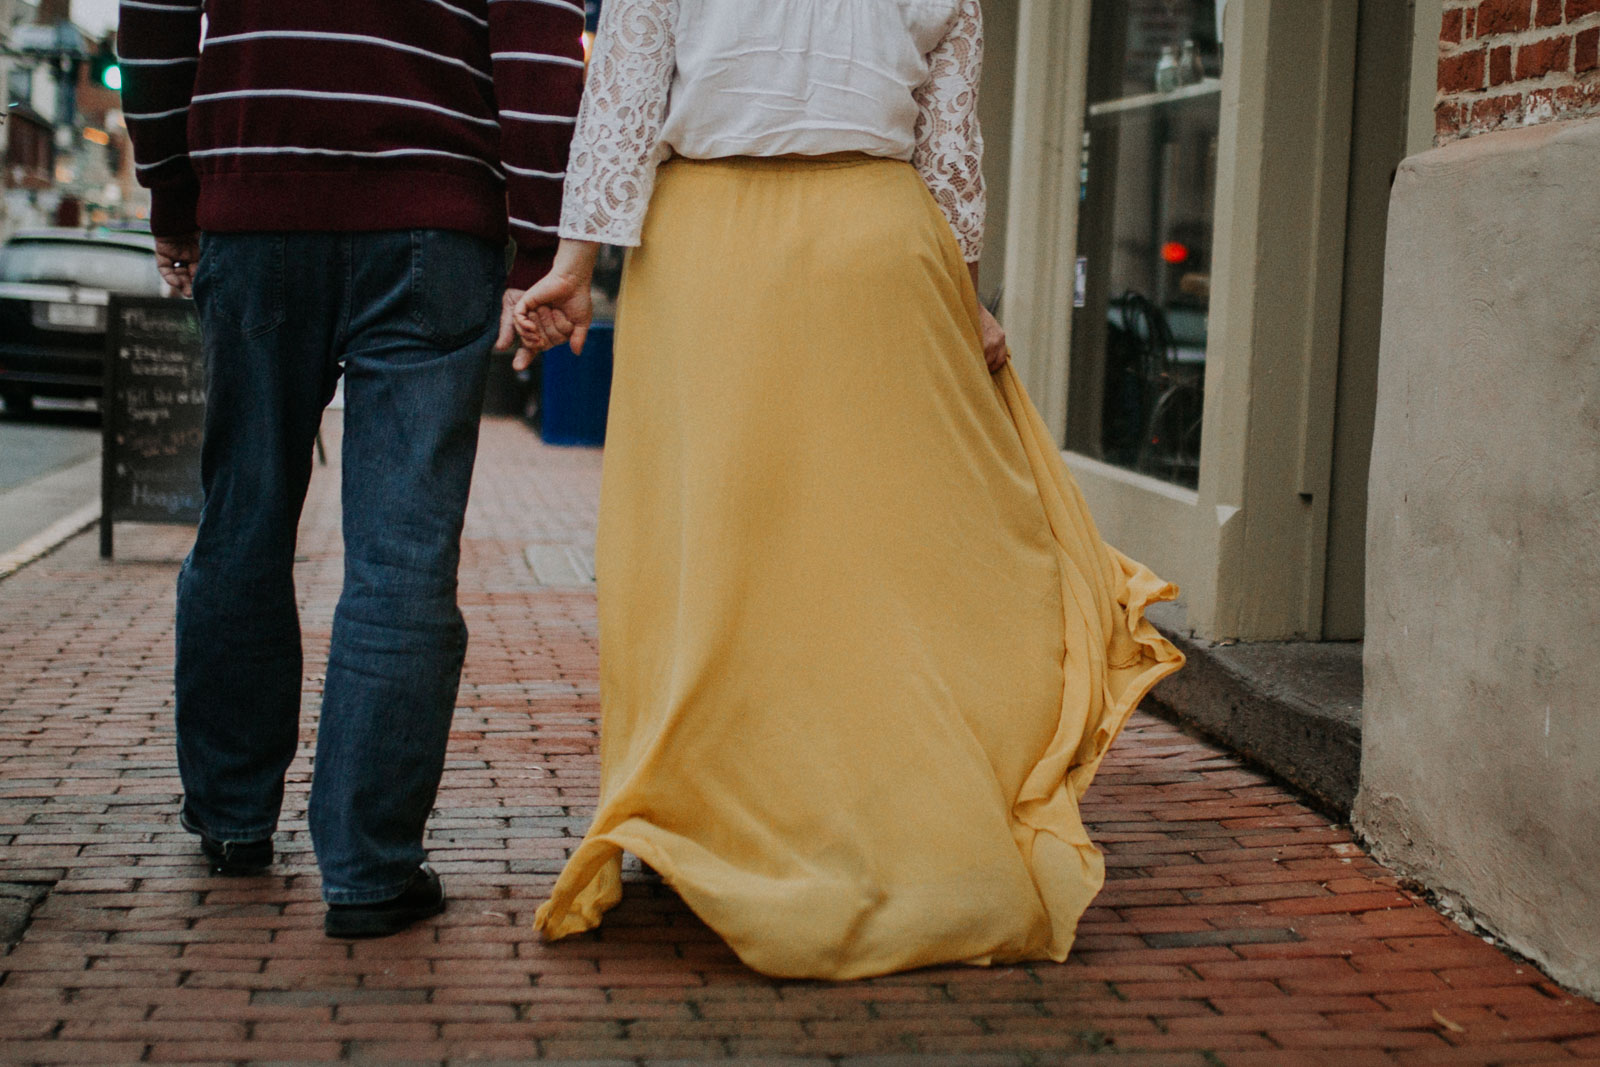 Woman in a yellow skirt holds hands with her husband as they walk down a brick siddewalk;  Downtown Leesburg Virigina